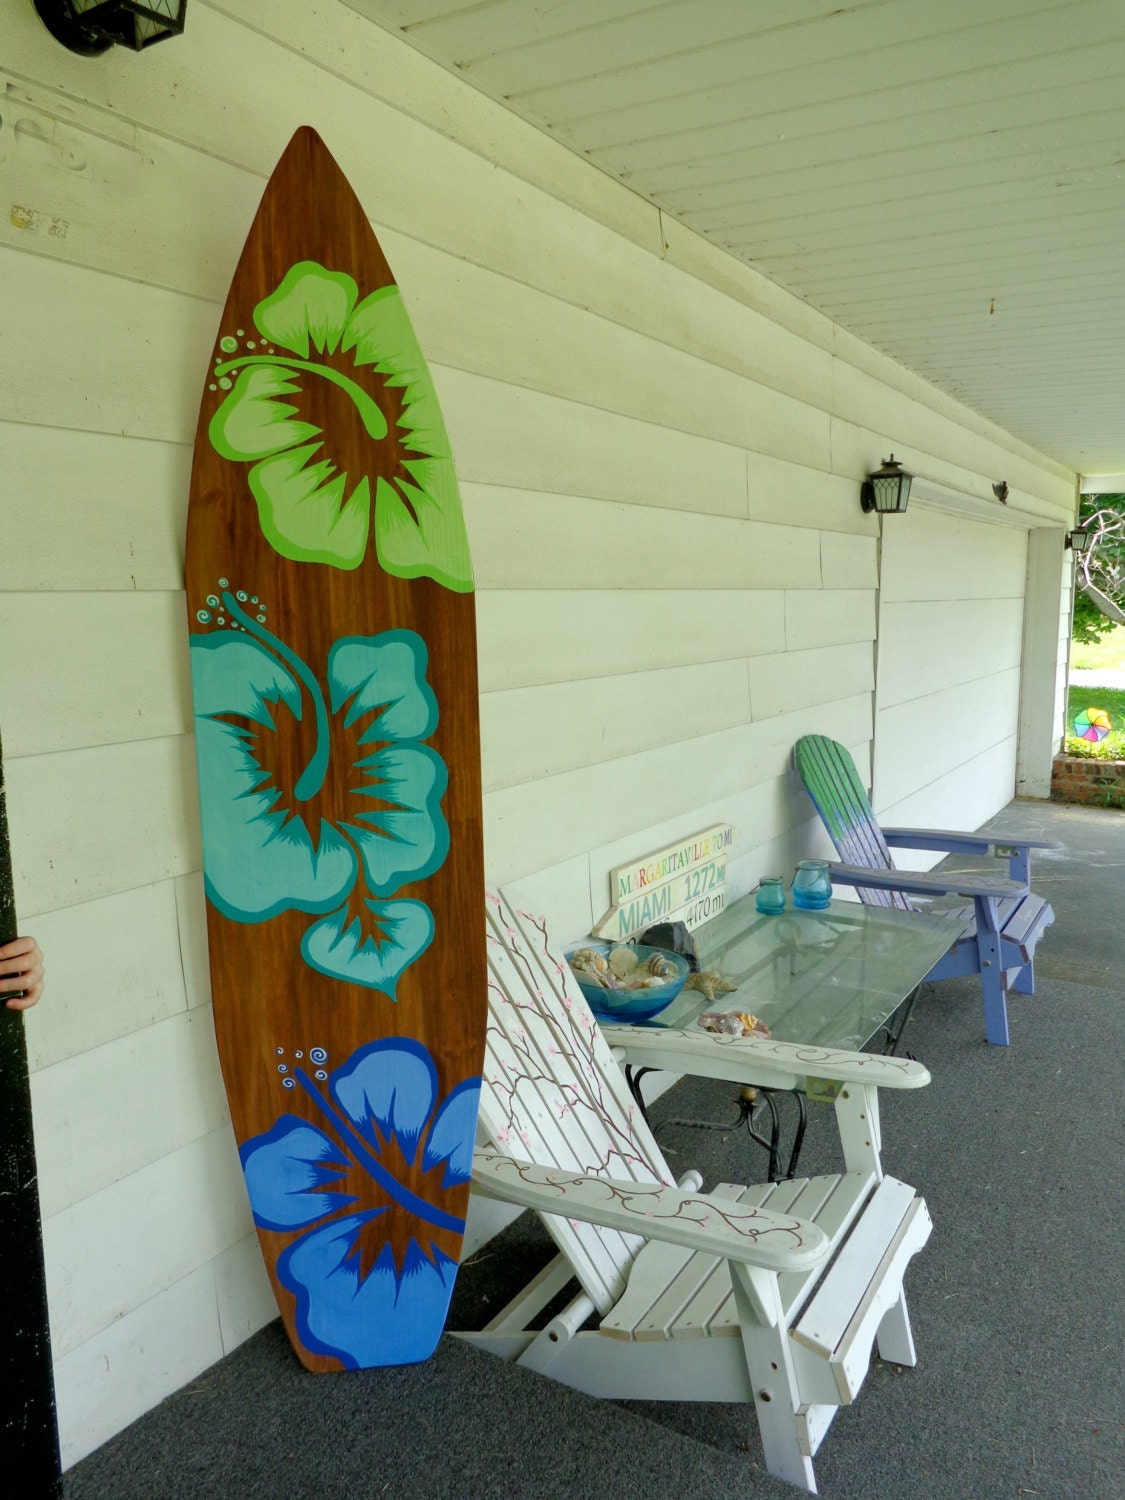 6 Foot Wood Hawaiian Surfboard Wall Art Decor Or Headboard Home Decorators Catalog Best Ideas of Home Decor and Design [homedecoratorscatalog.us]